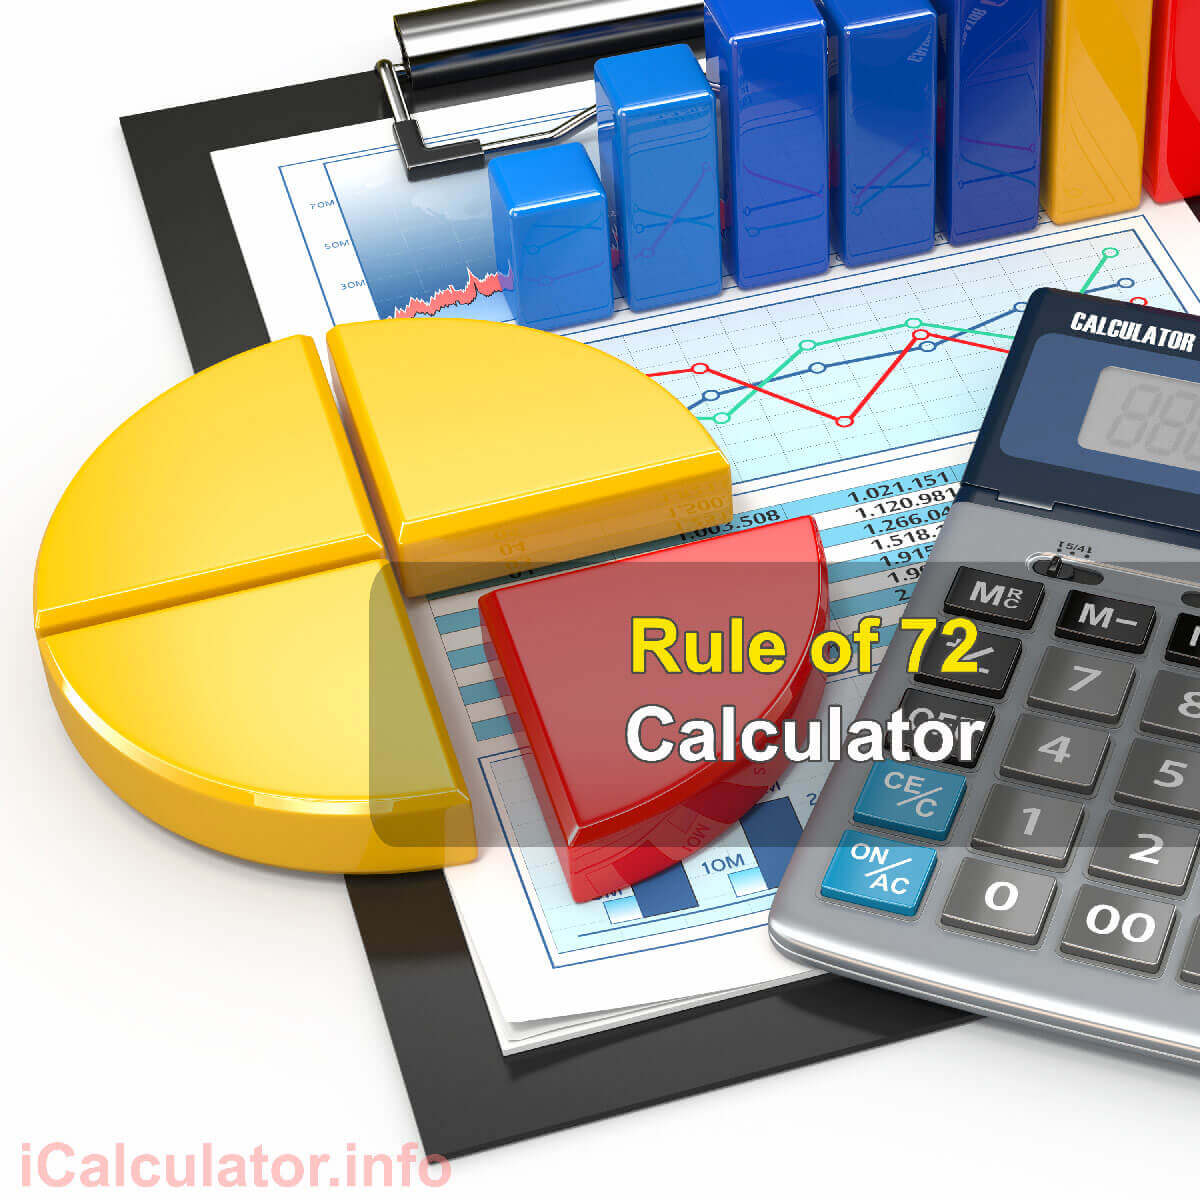 Rule of 72 Calculator. This image provides details of how to calculate the rule of 72 using a calculator and notepad. By using the rule of 72 formula, the Rule of 72 Calculator provides a true calculation of the interest rate on an investment and/or personal and home loans.